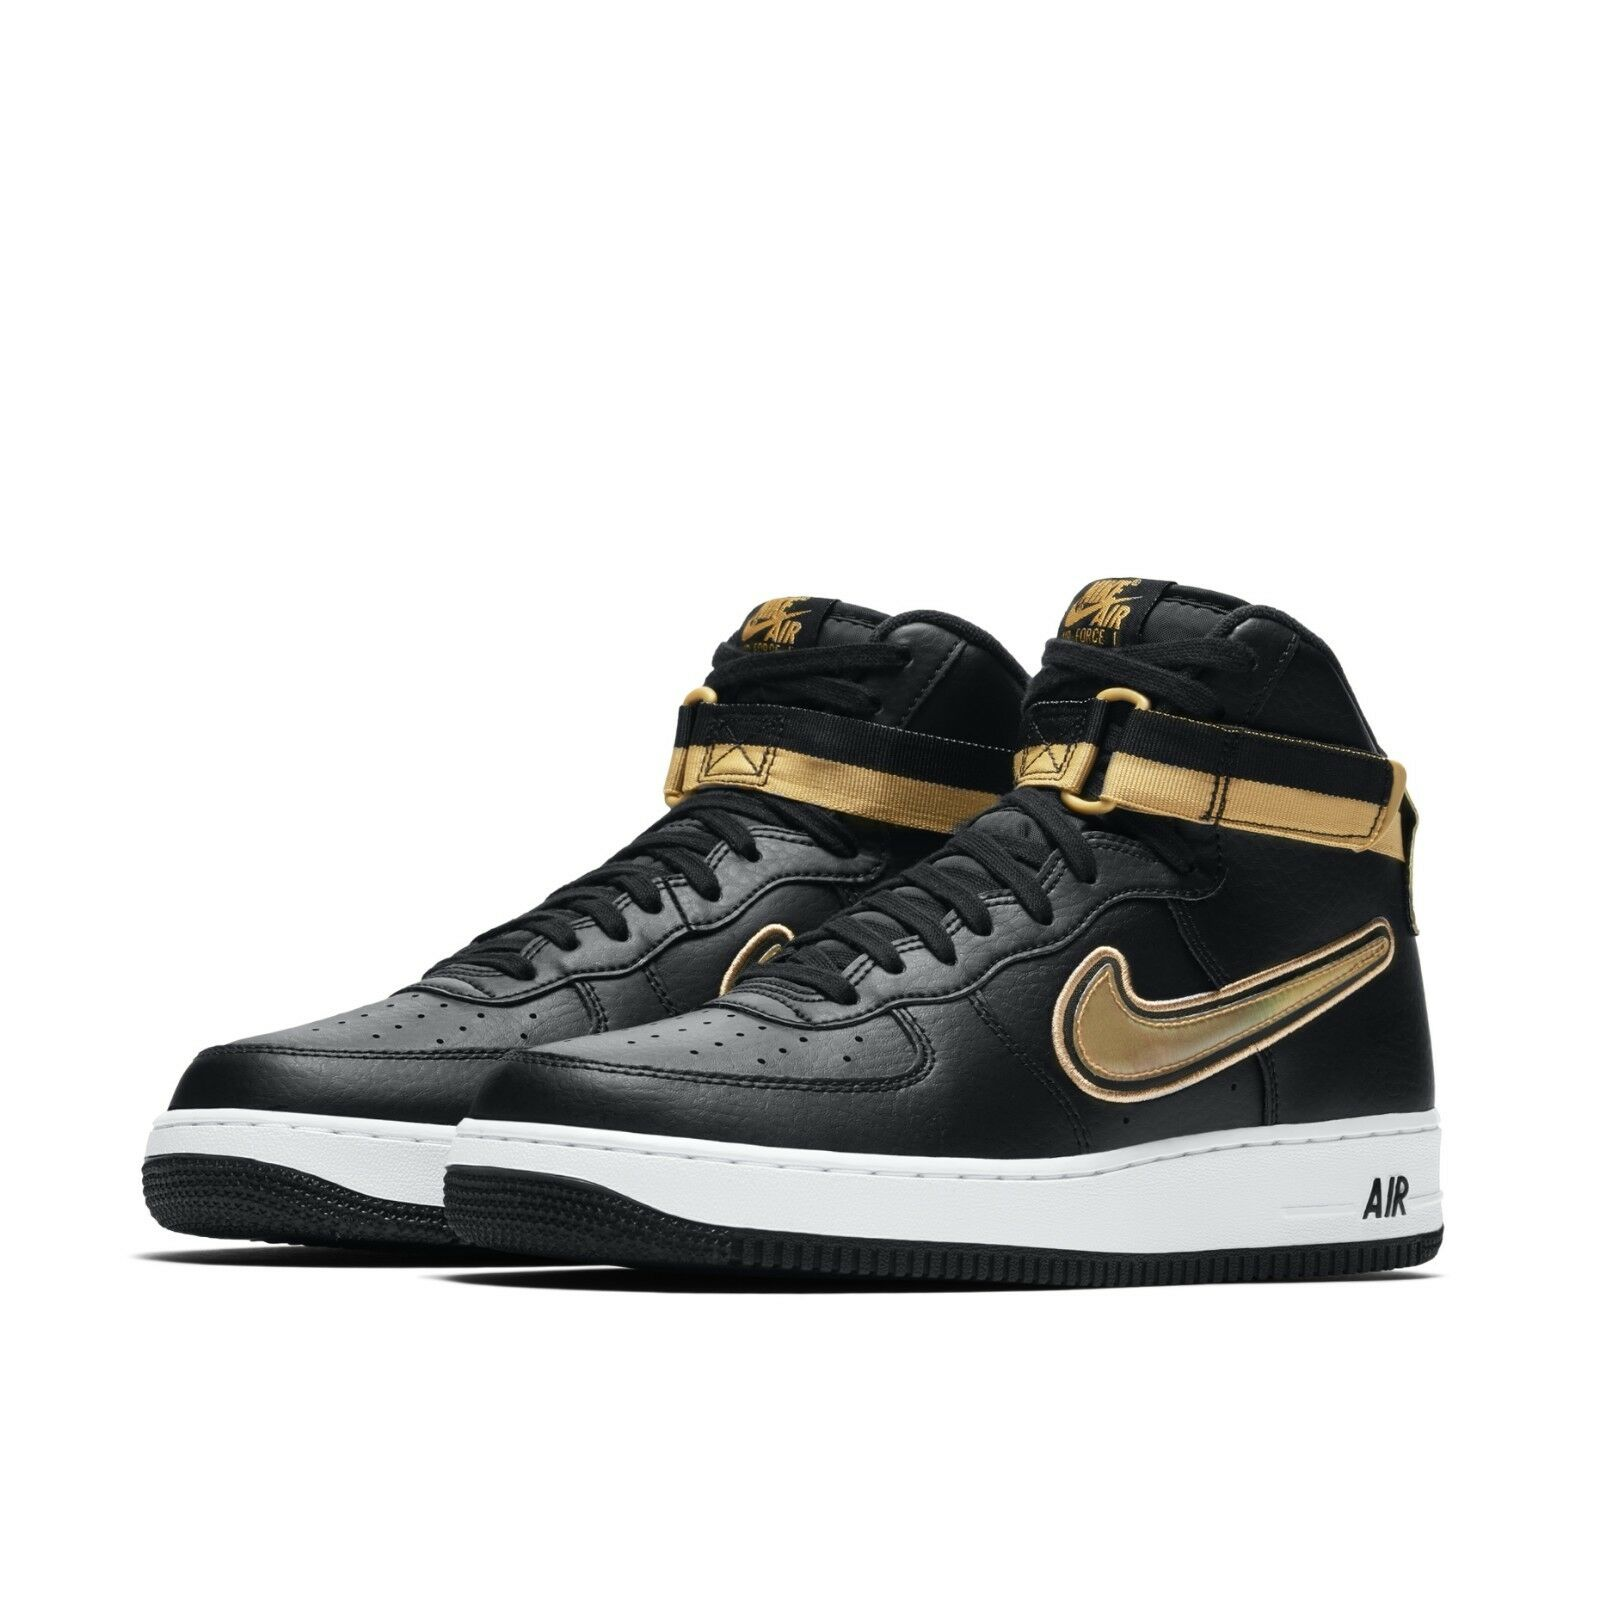 online retailer ae25a 61755 Nike Mens Air Force 1 High 07 LV8 Sport AF1 NBA Black Metallic Gold  AV3938-001